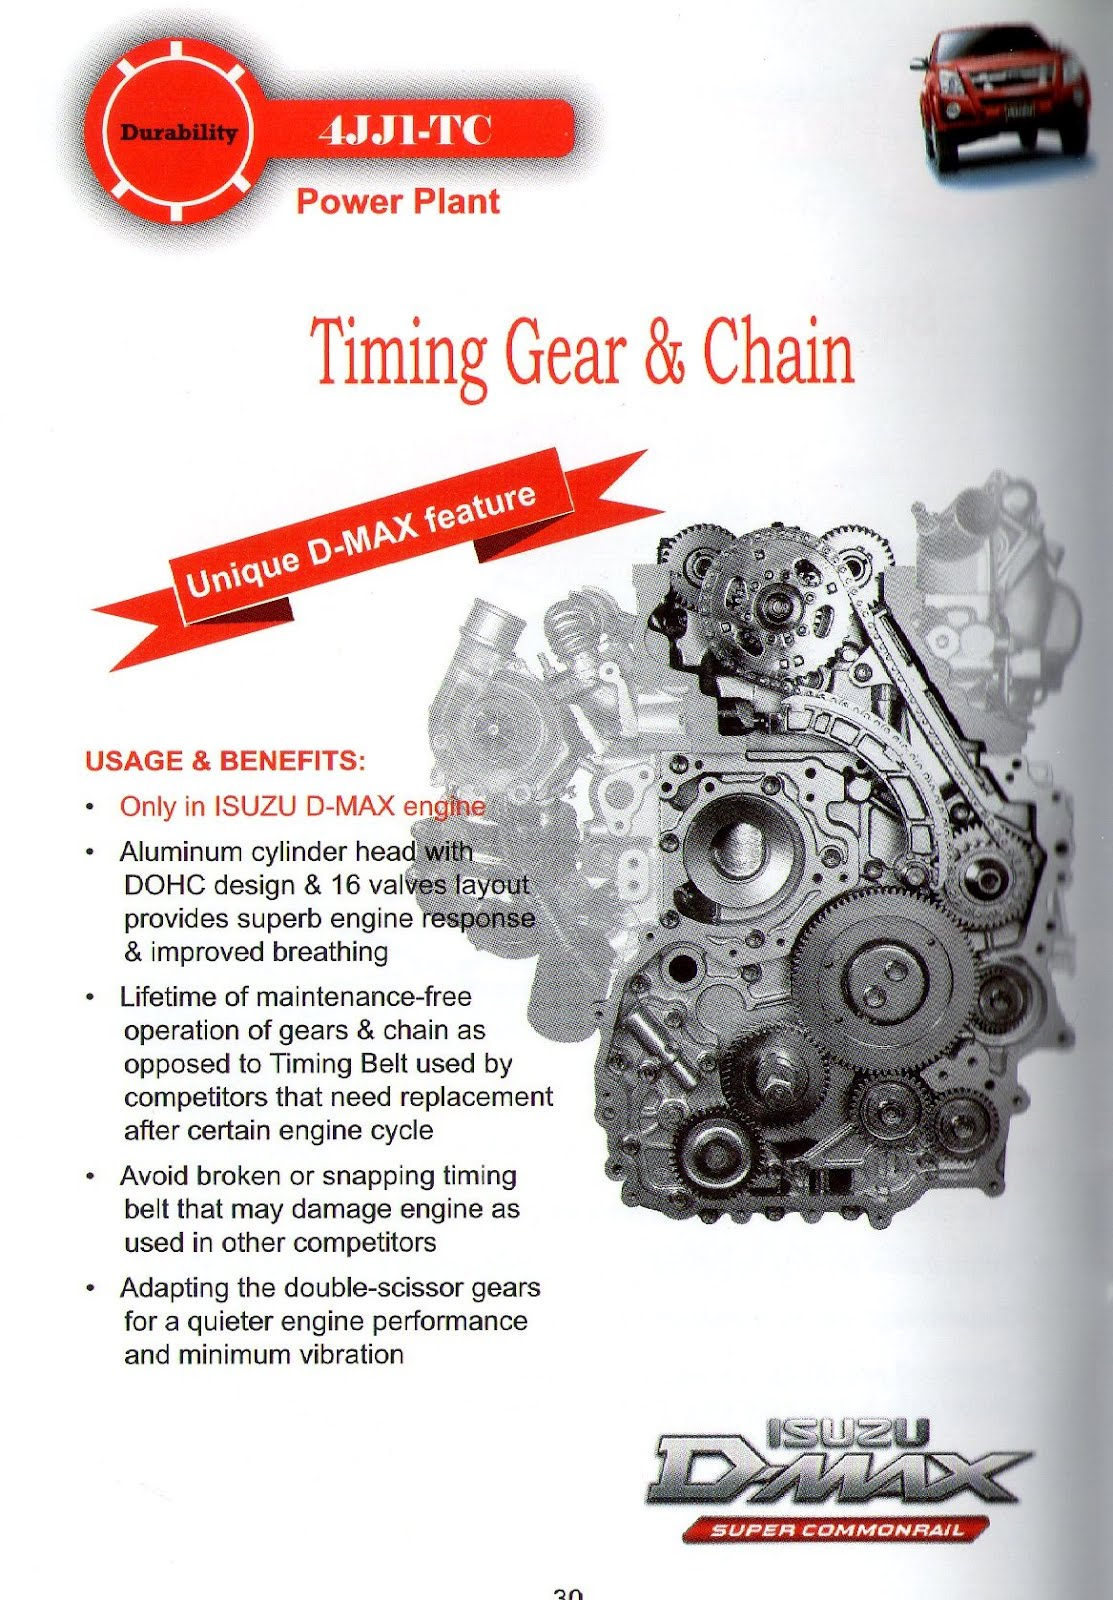 Dmax engine using timing chain dan gear NOT belt....reduce cost of  replacing timing belt and bearing and for long lasting engine.